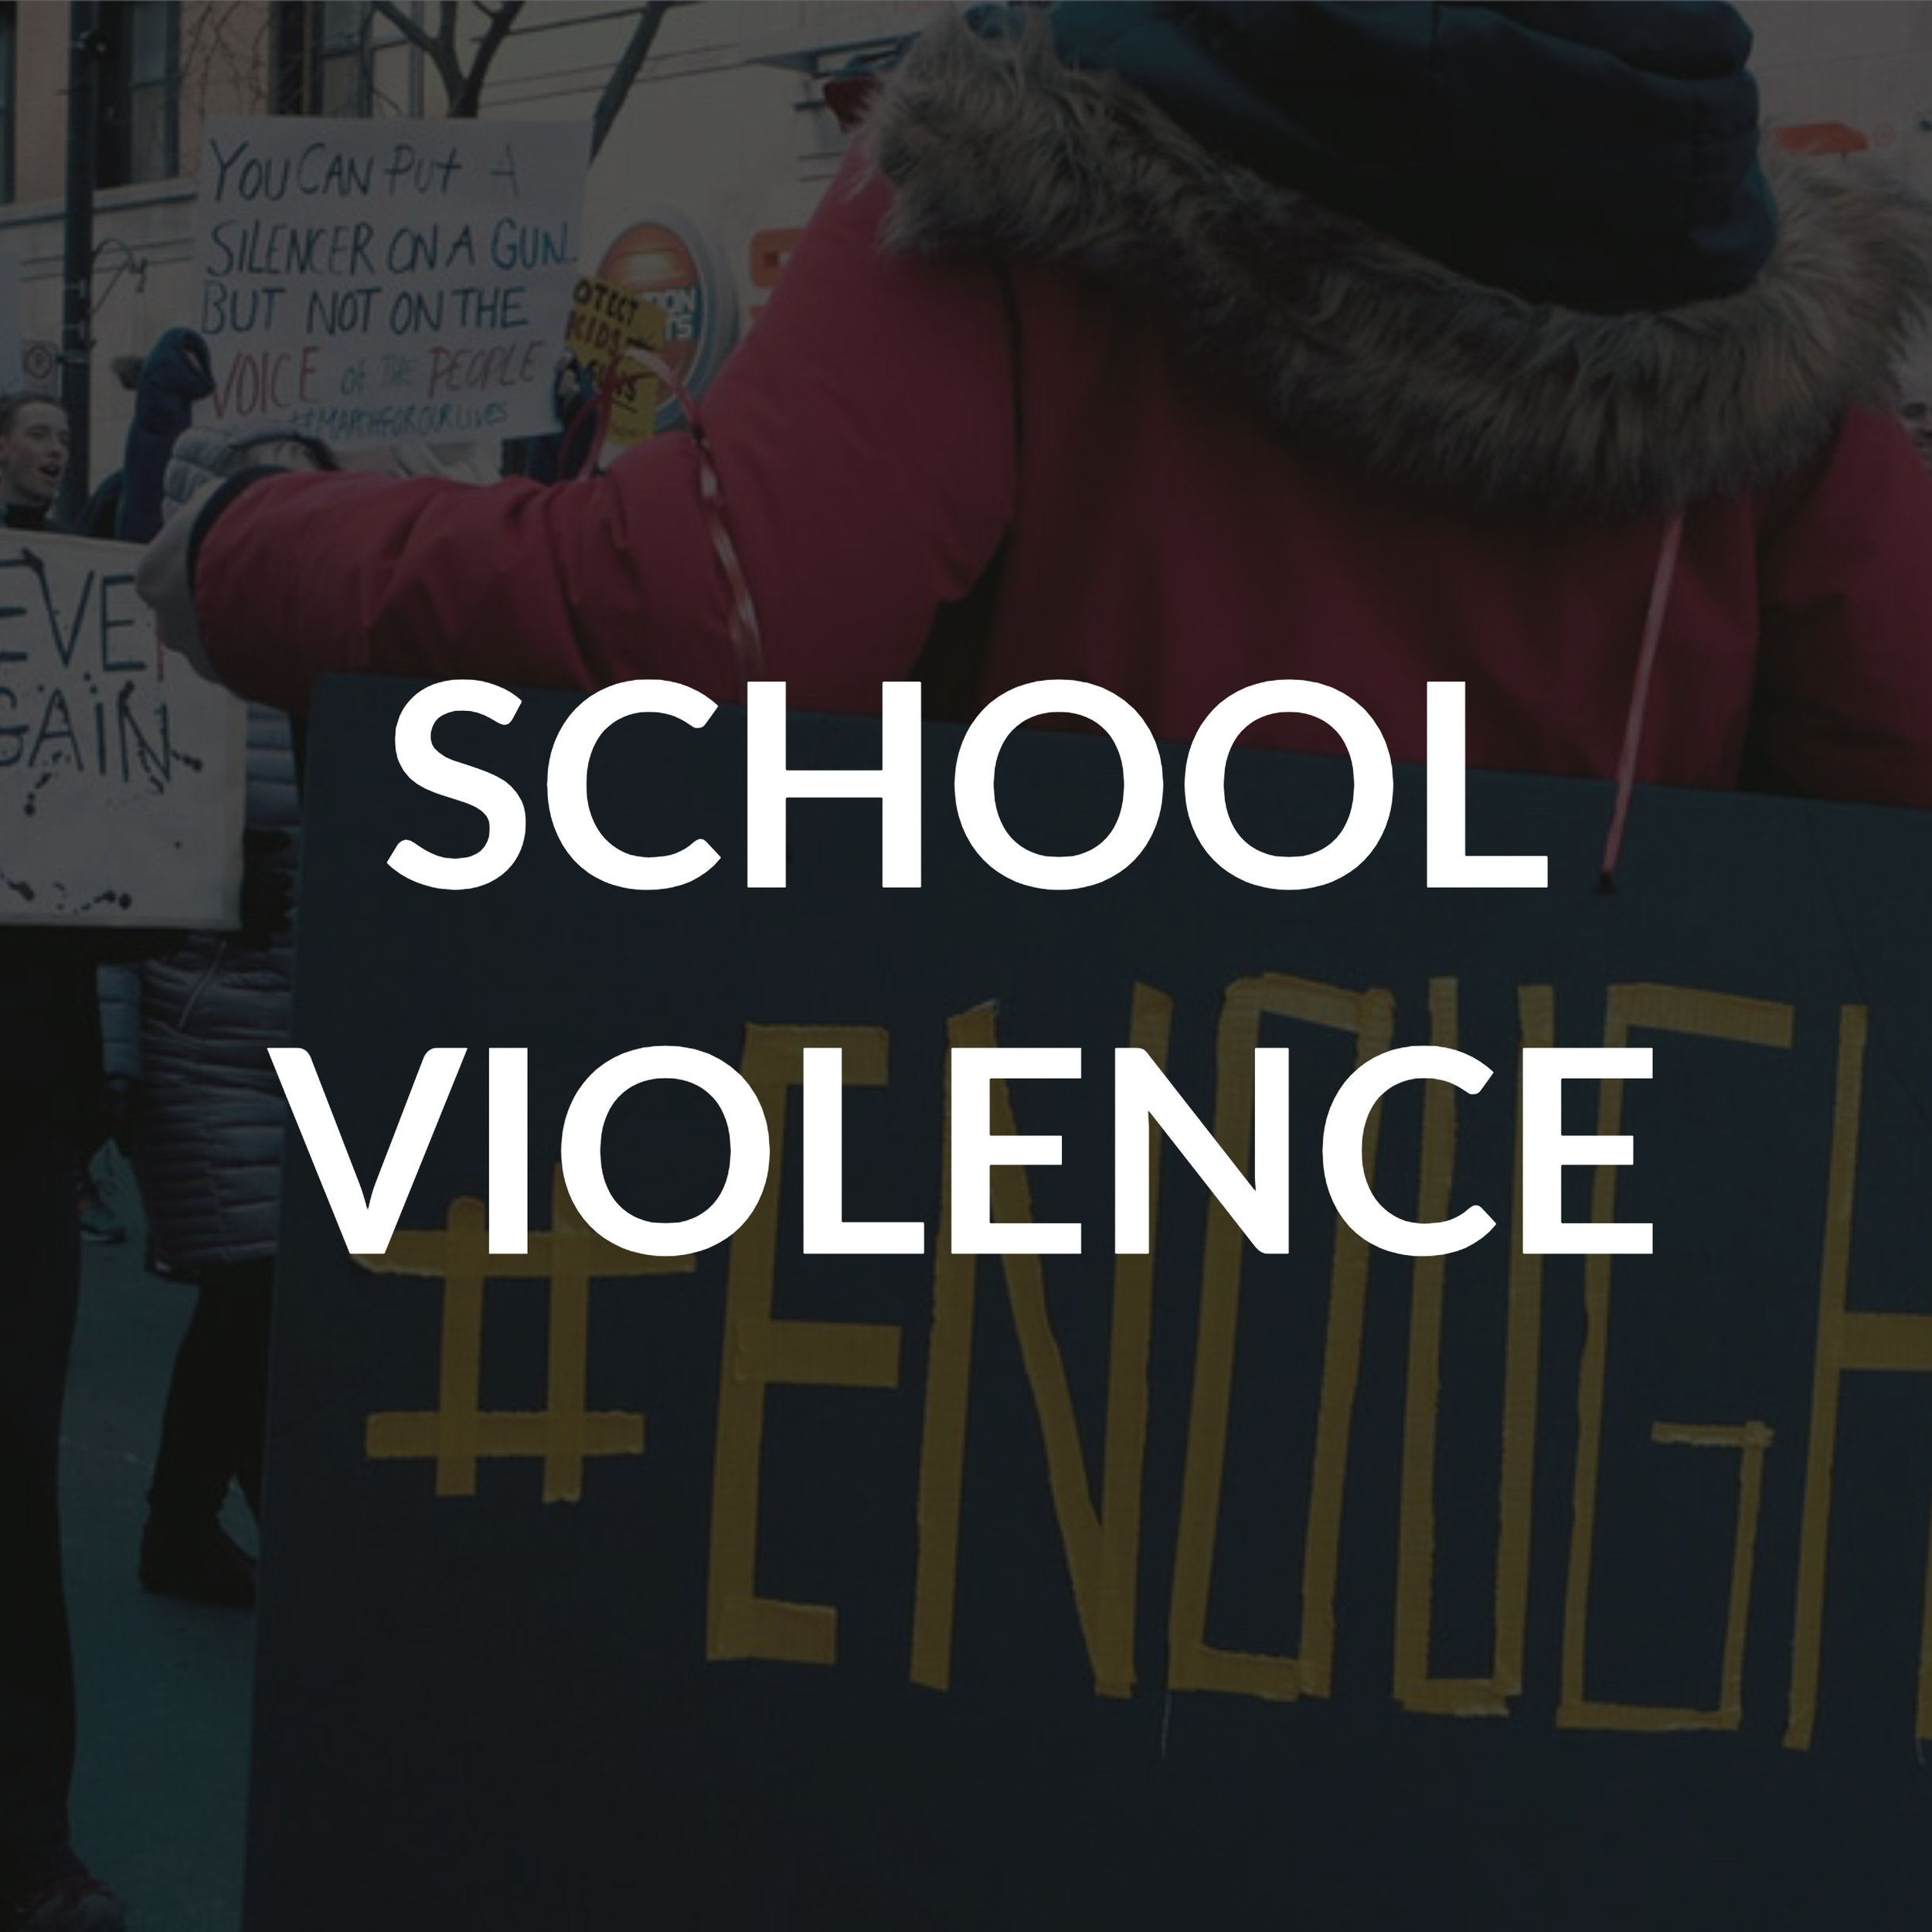 Children should feel safe when they go to school. My family background in education has taught me that children don't learn well in a fortress. I support confronting the school violence epidemic by creating red flag protective orders, expanding background checks for the purchase of firearms, and educating firearm owners about the importance of responsible gun ownership habits.